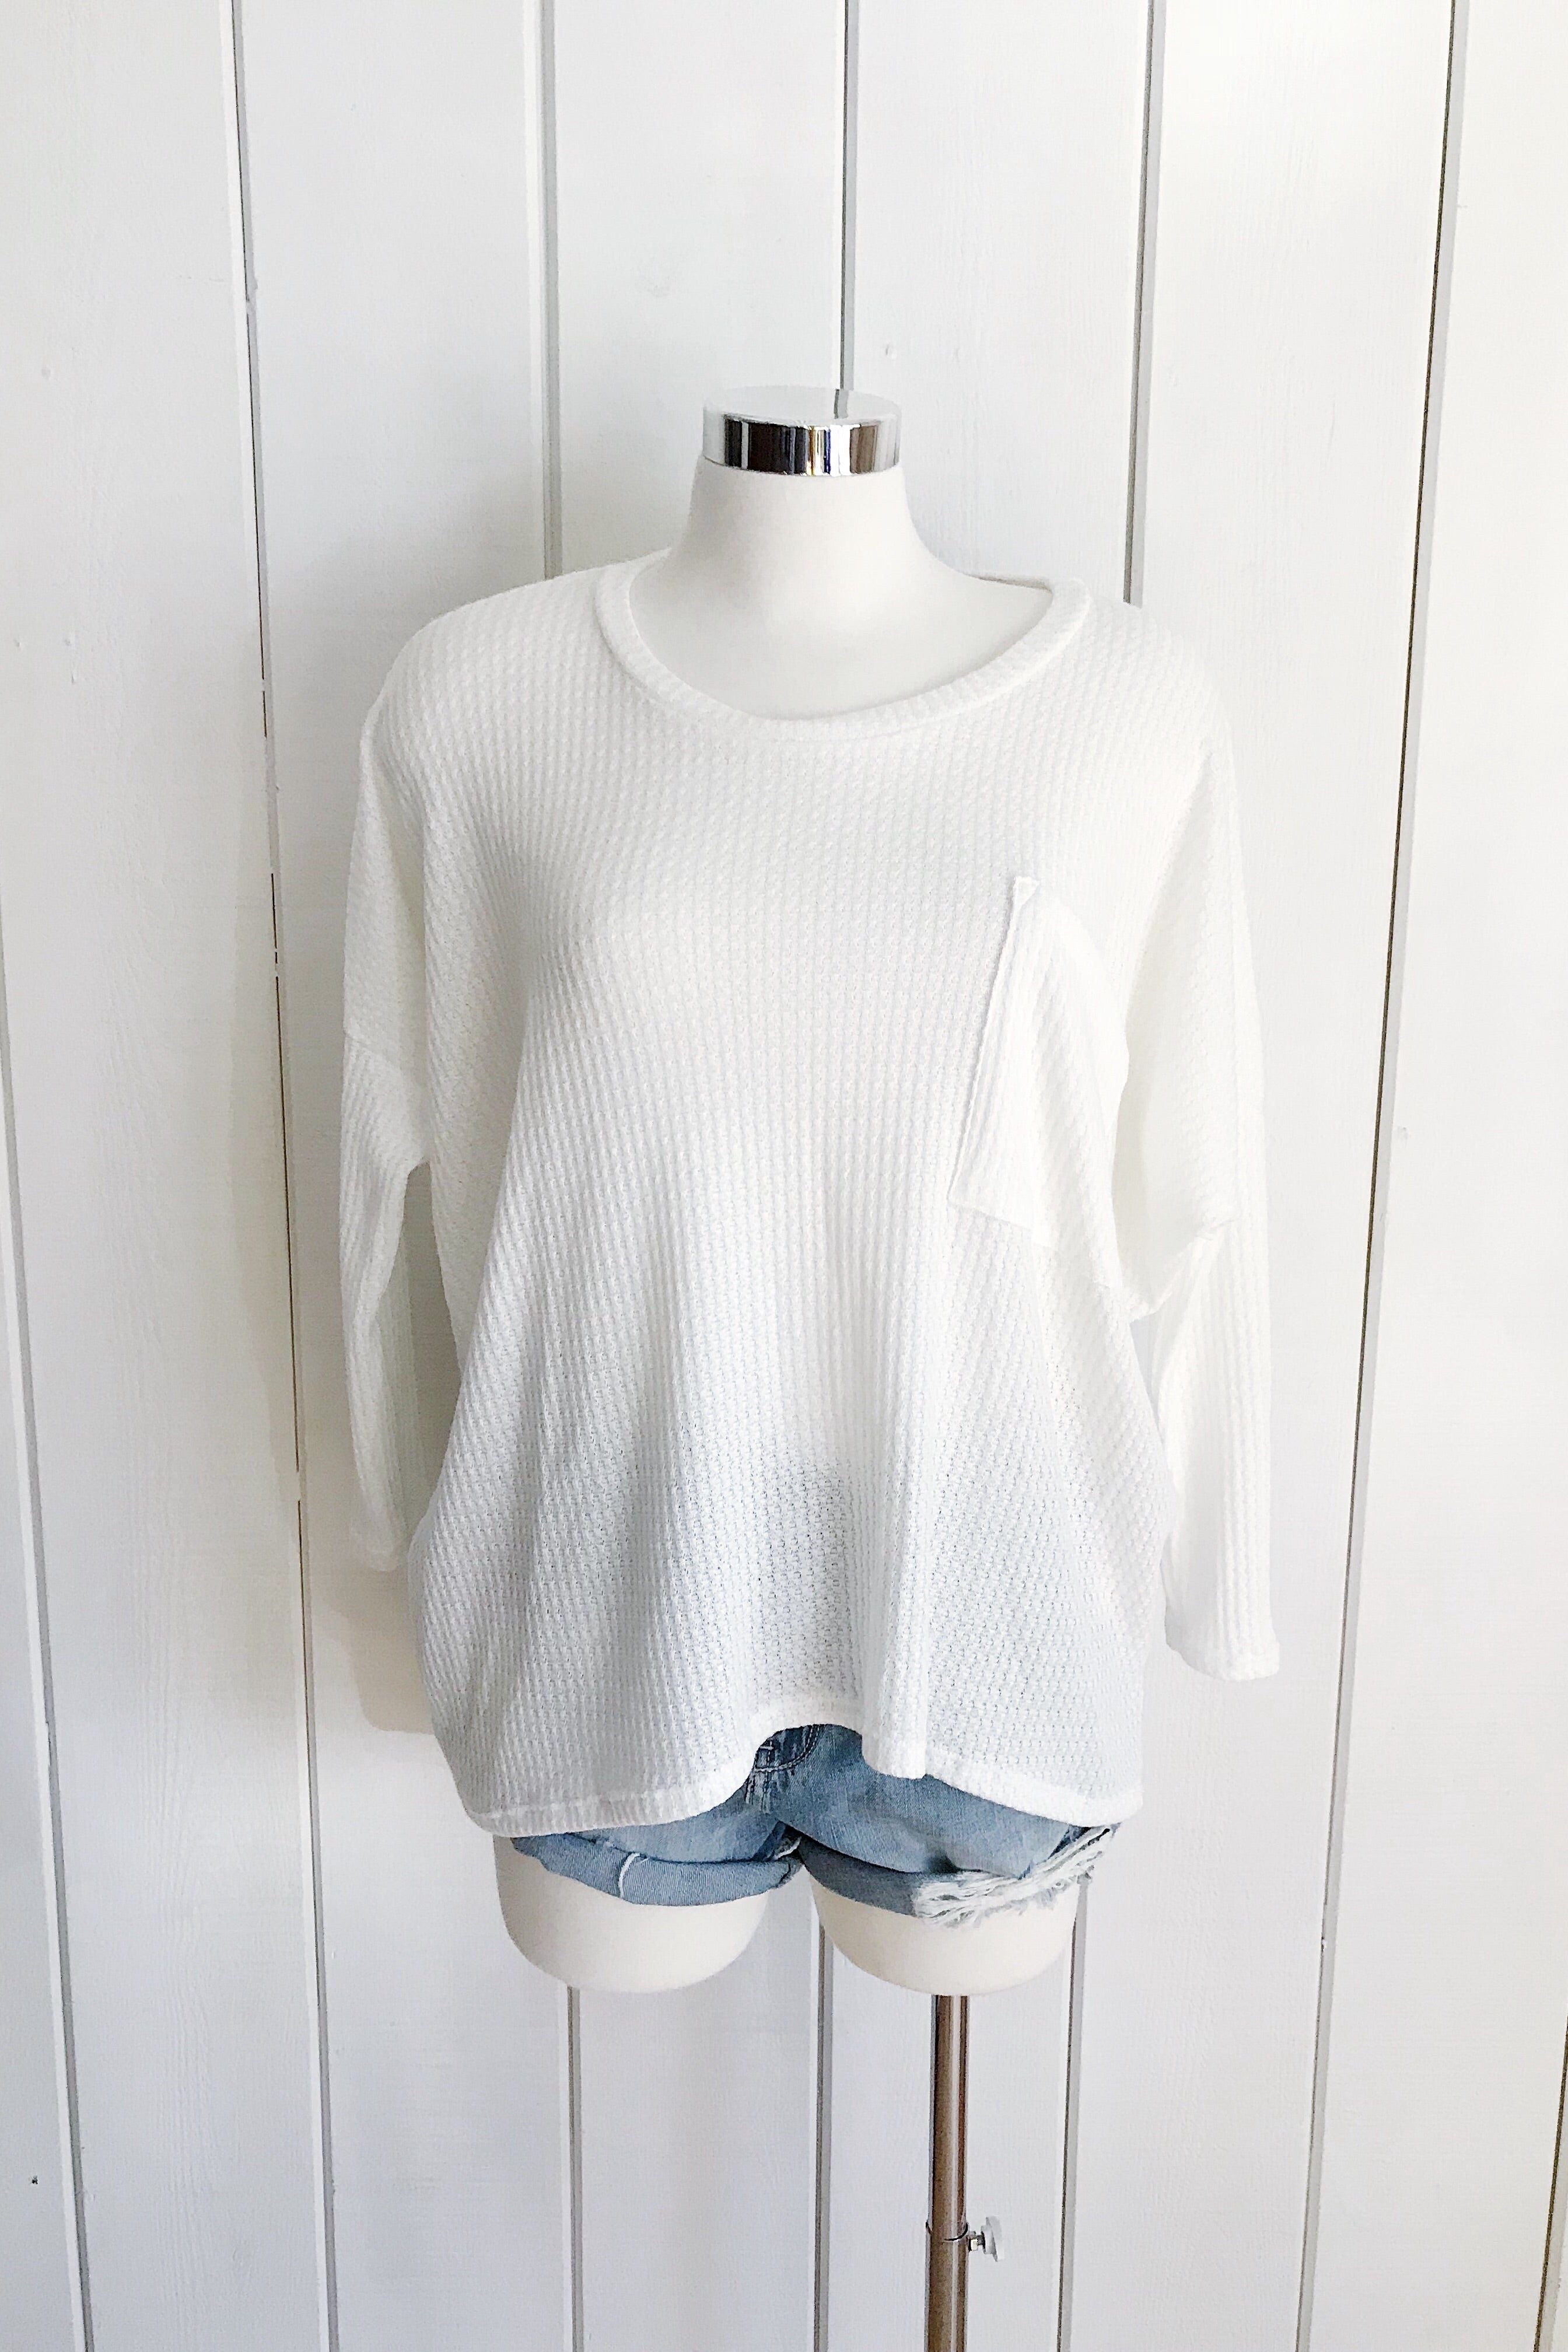 Oversize Knit Pocket Tee Top - Ivory